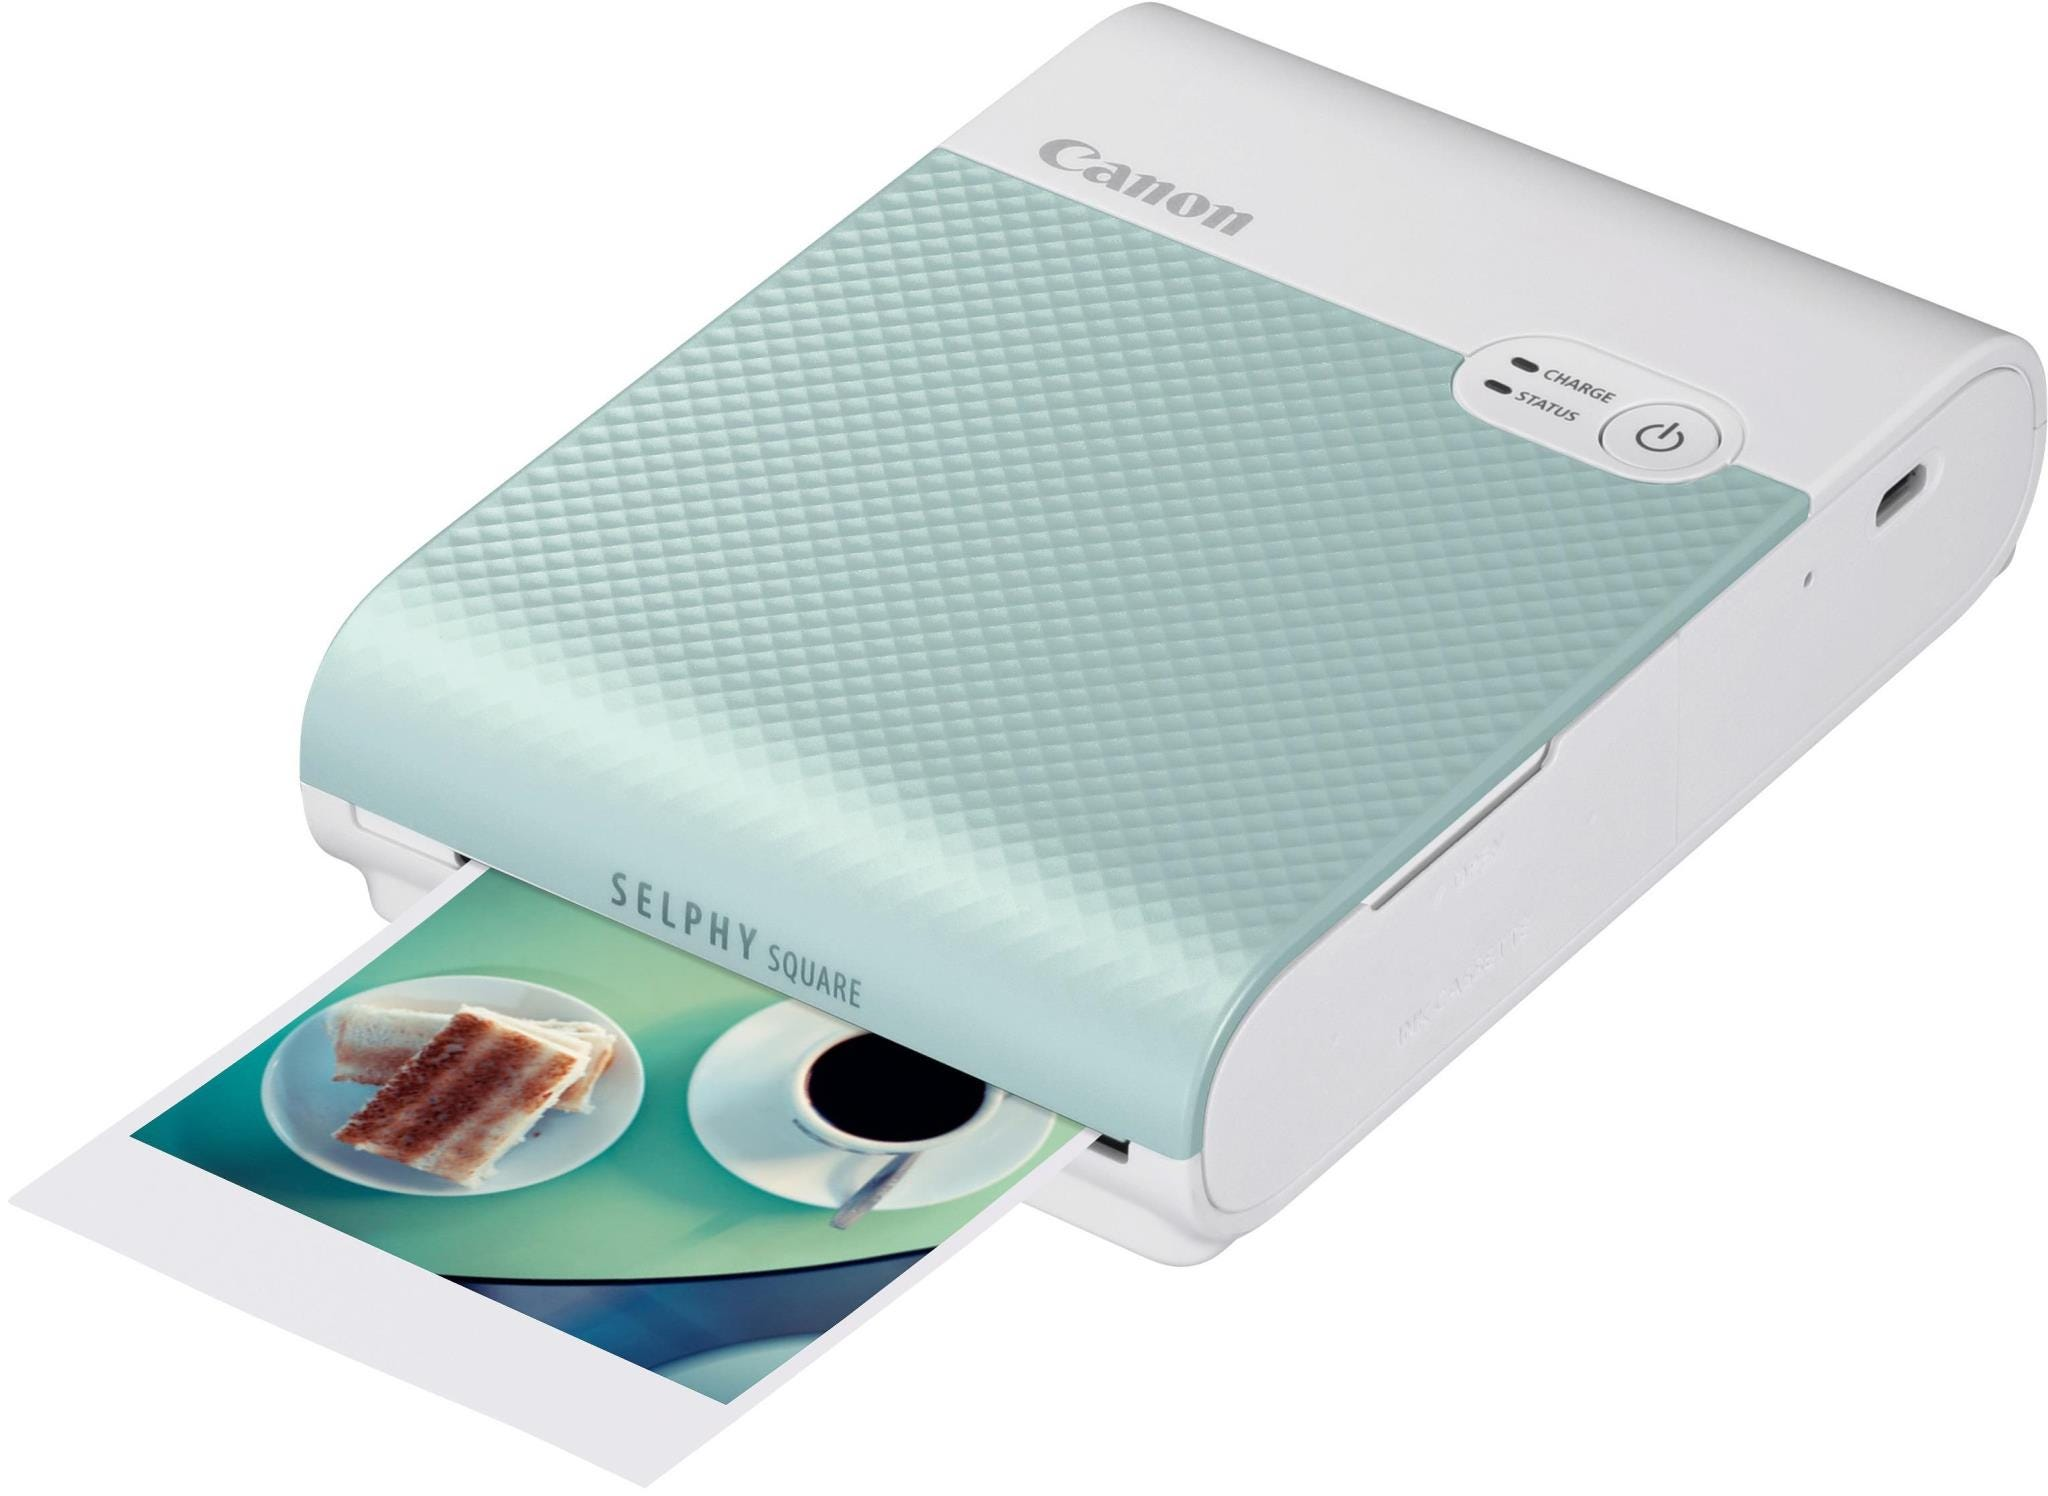 Canon Selphy Square QX10 Instant Photo Printer - Green